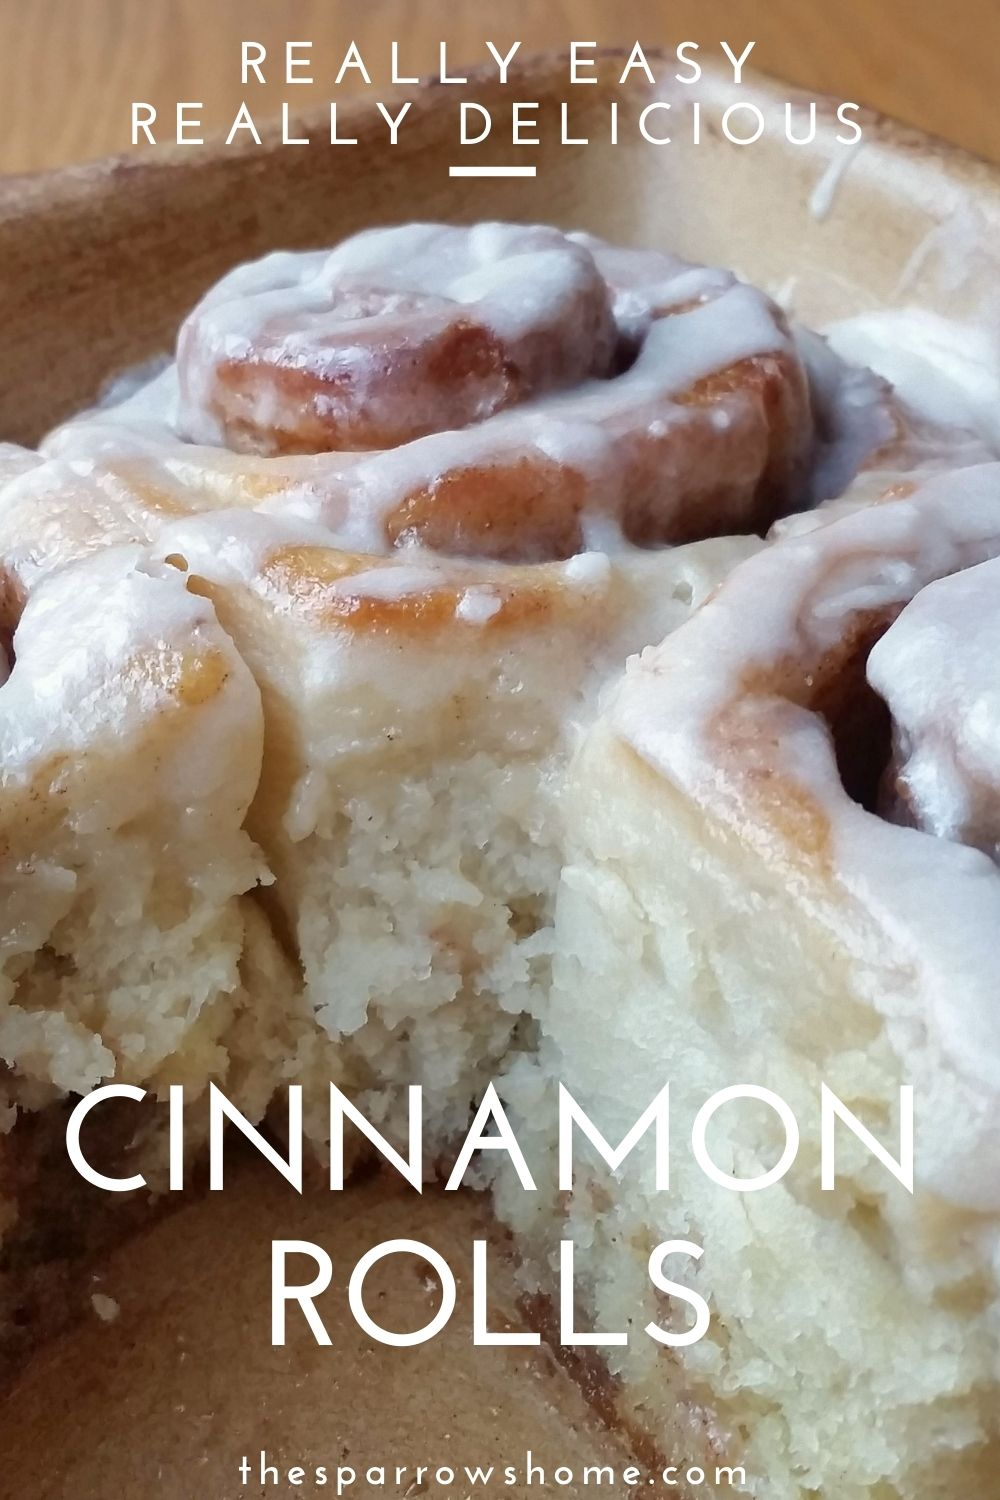 This simple recipe can be made even by a complete beginner but is still my go-to recipe for the very best cinnamon rolls ever. Soft and gooey, with a sweet, maple-flavored frosting they are everyone's favorite!